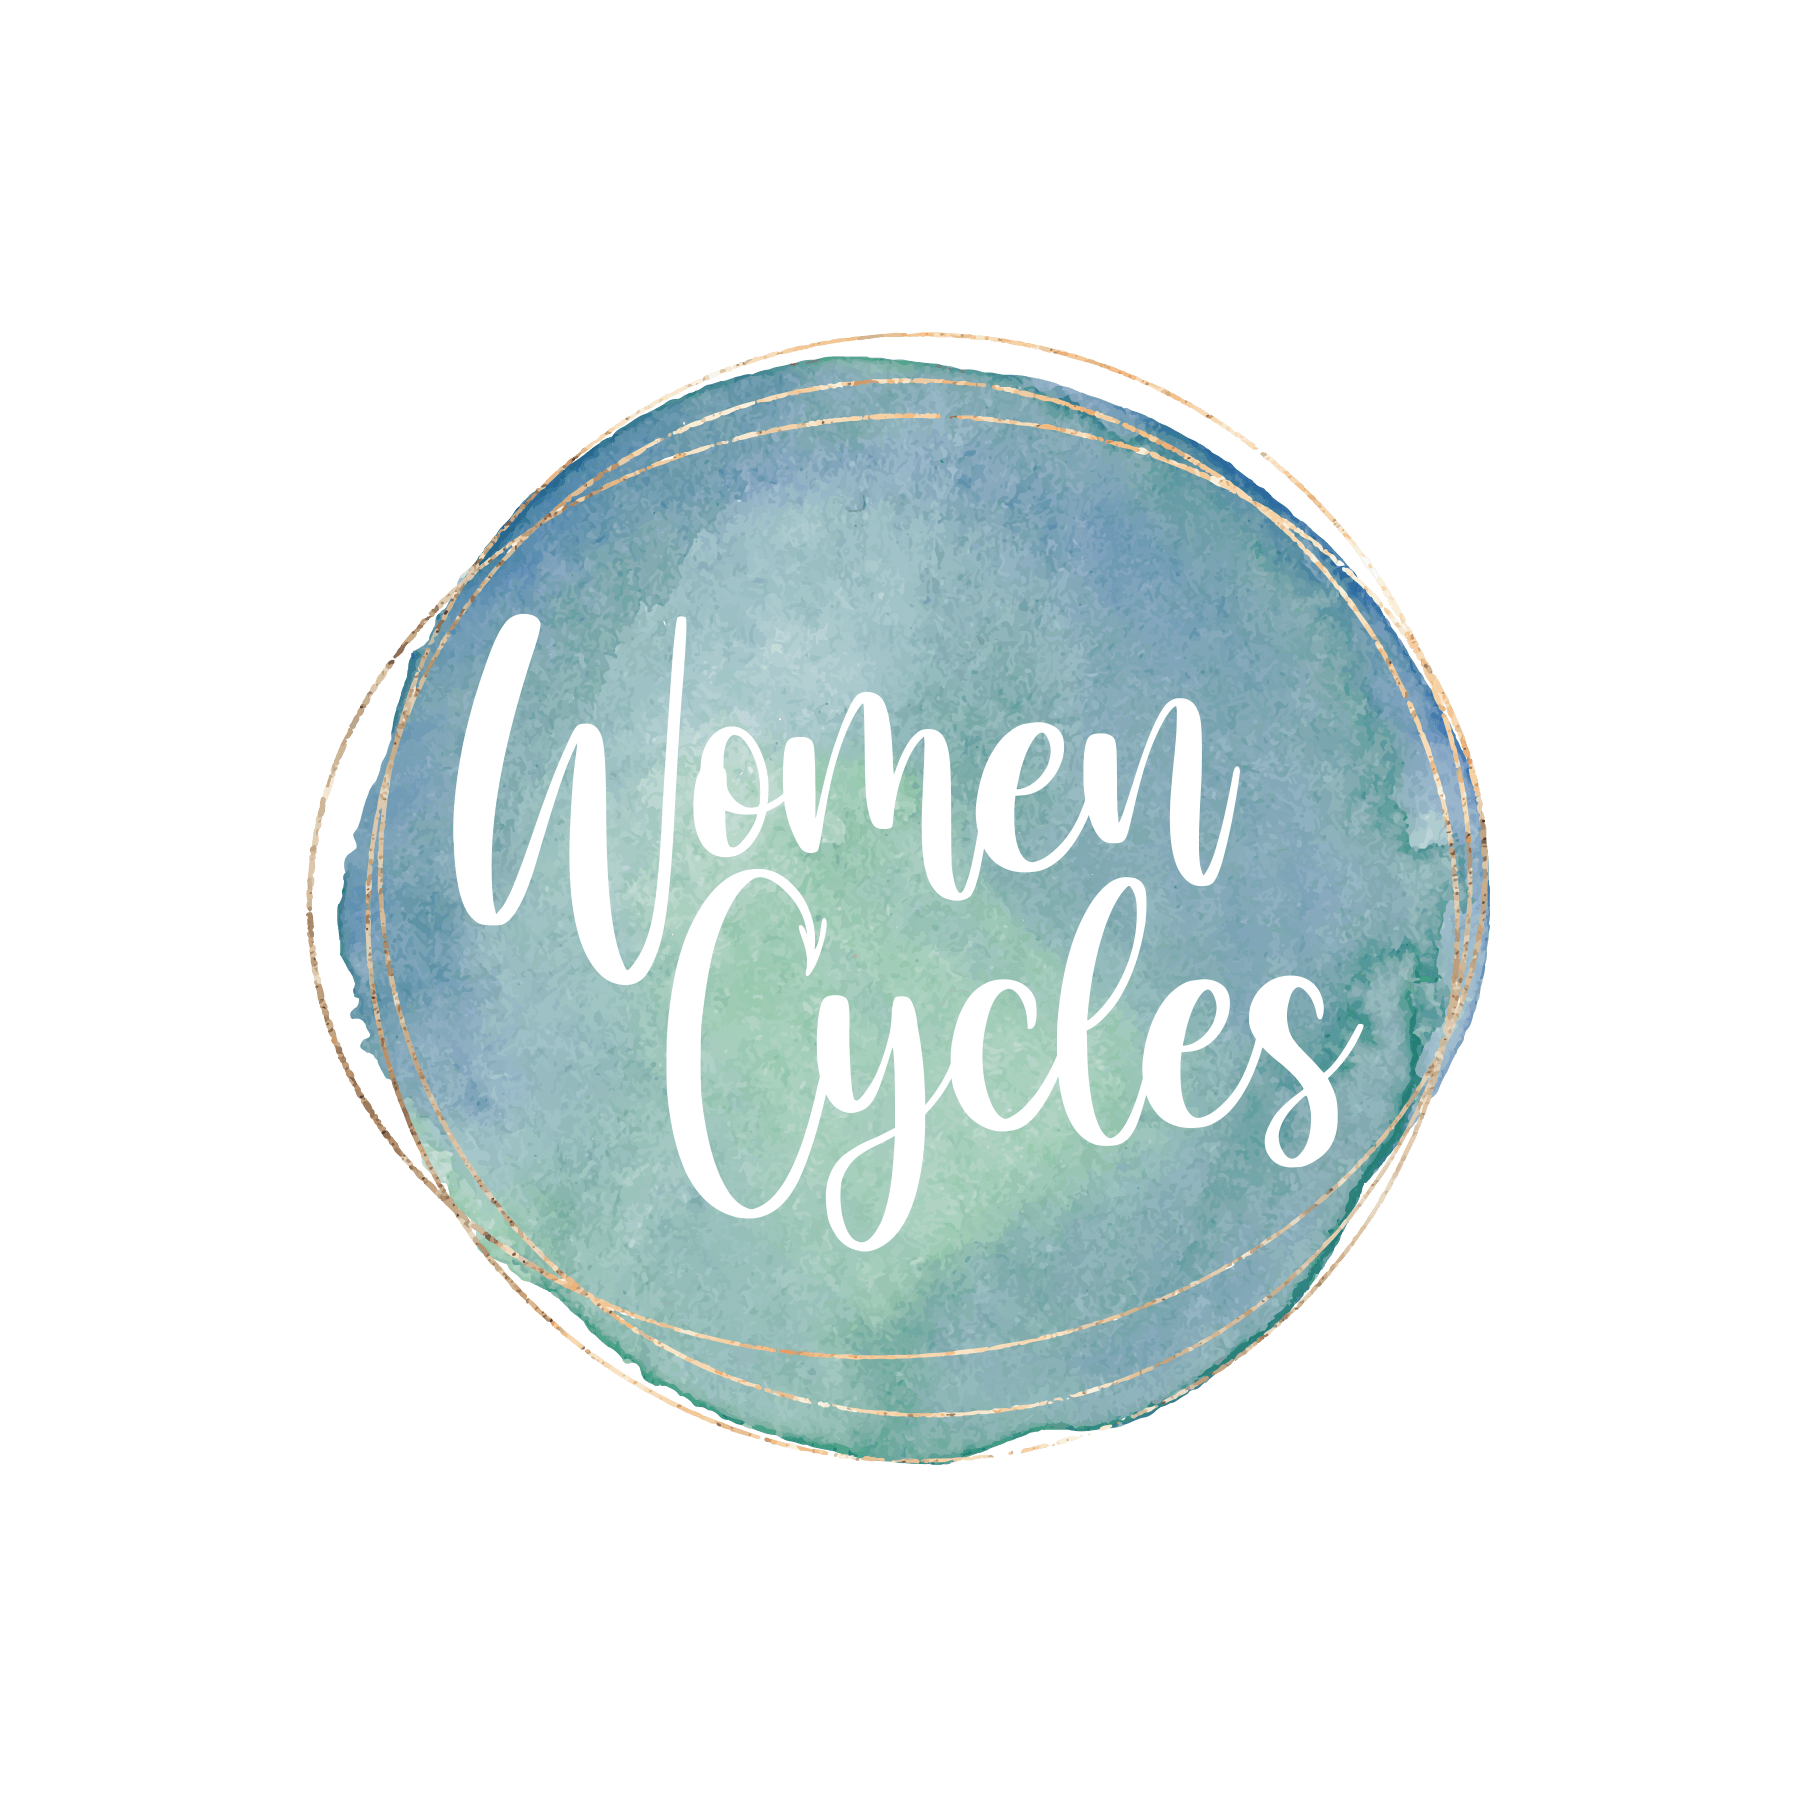 womencycles